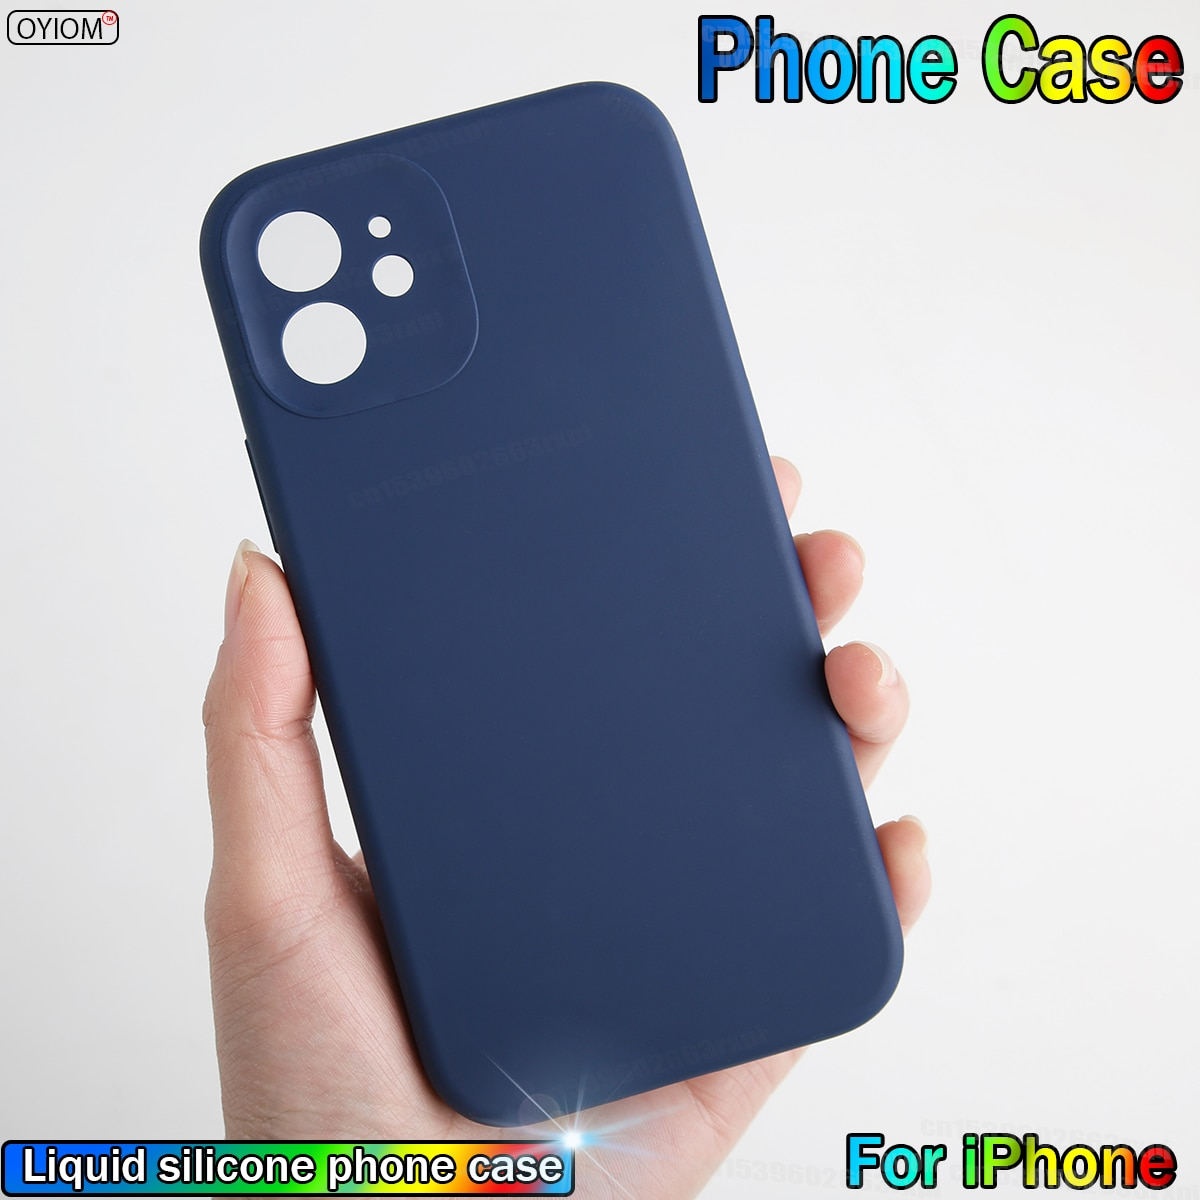 Original Liquid Silicone Luxury Protective Case For iPhone 12Pro 11 Pro Max 6 S 7 8 X Xs Xr Plus SE